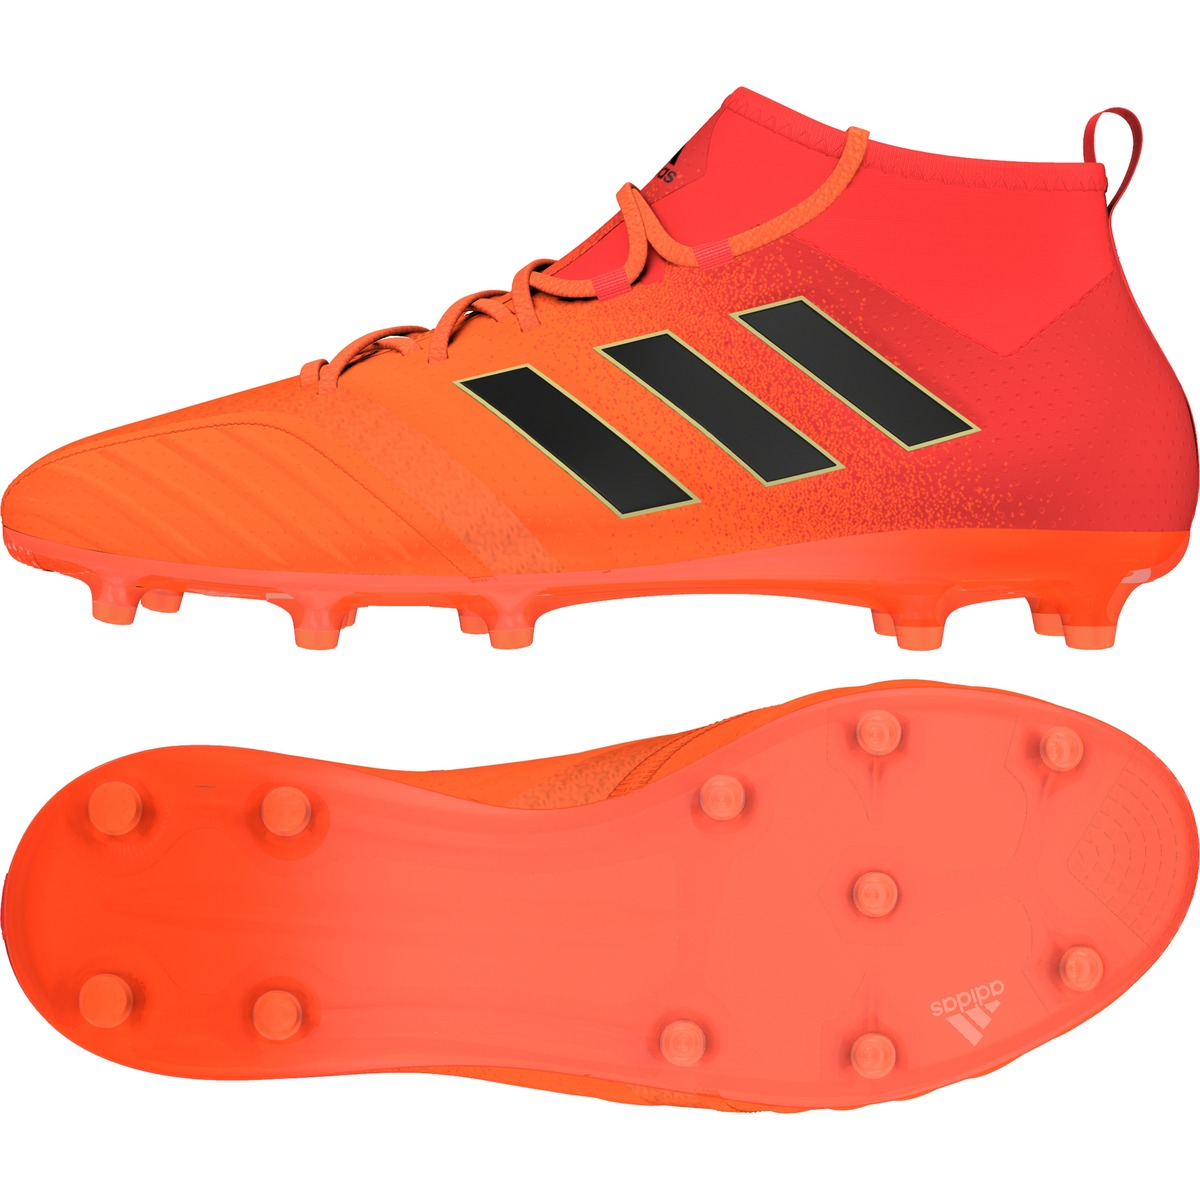 972cc536 Find every shop in the world selling adidas ace 16.1 fg leather ...